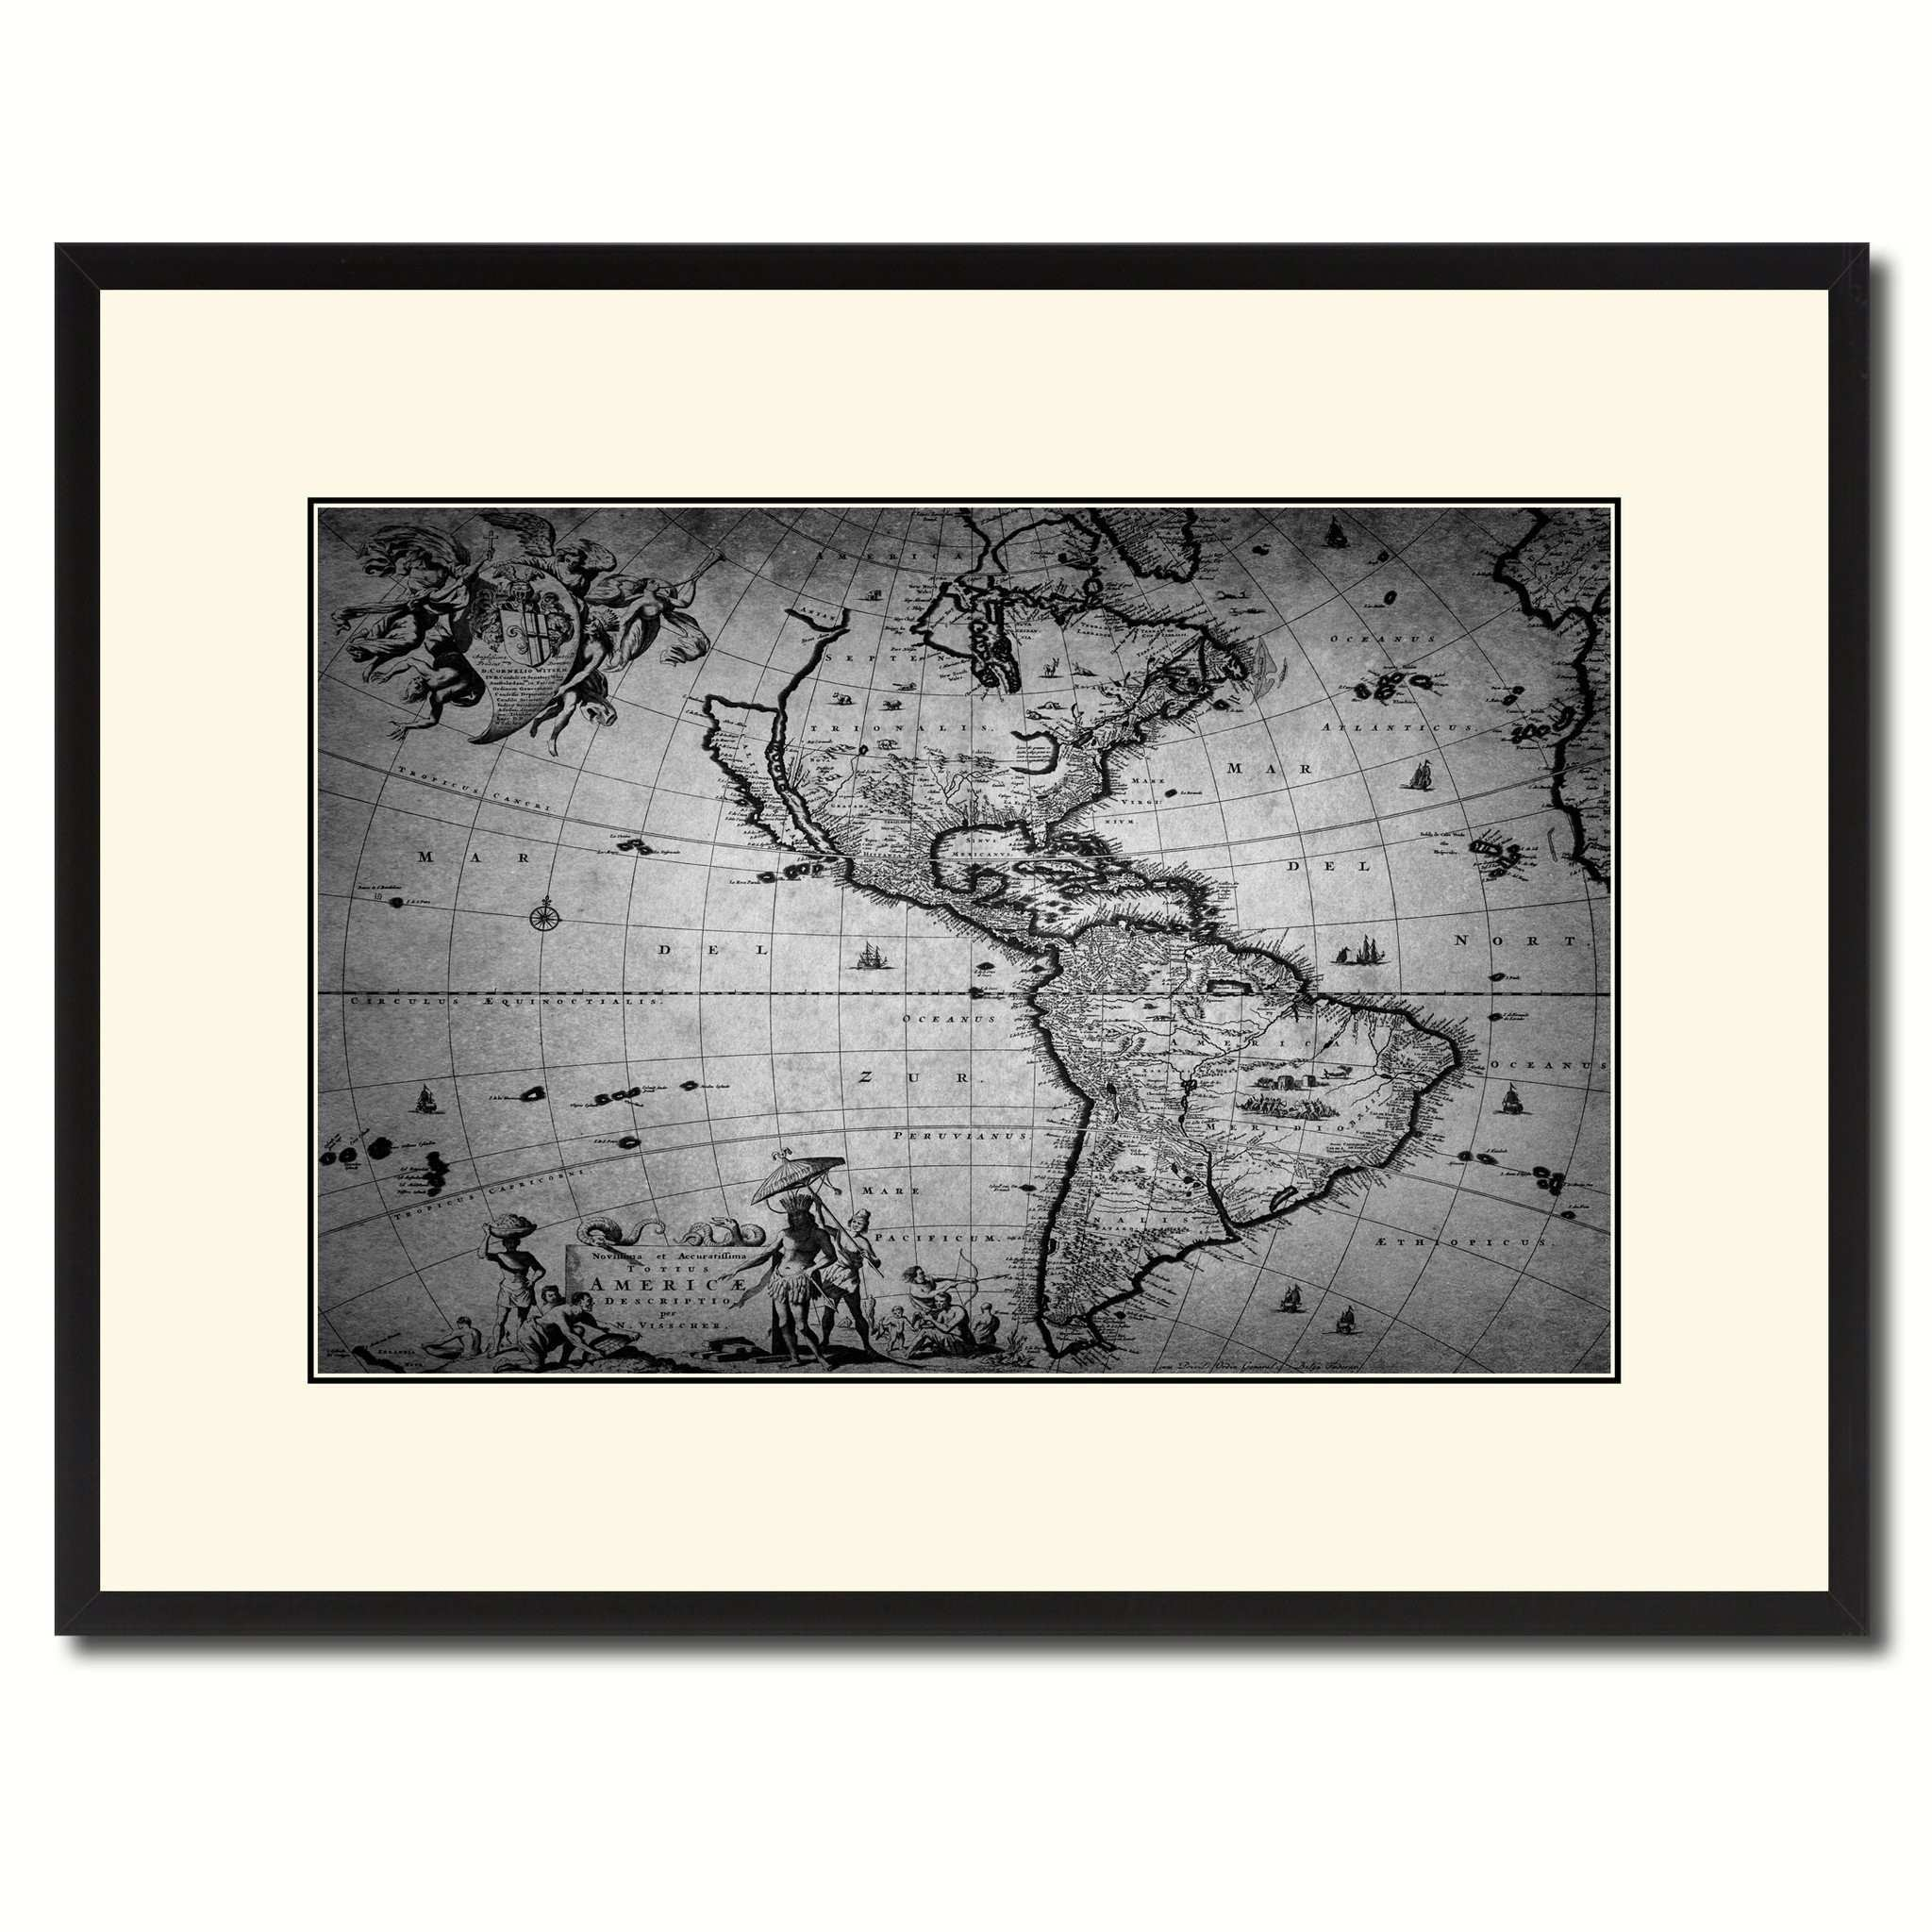 America Vintage B&W Map Canvas Print Picture Frame Home Decor Wall Art Gift Ideas